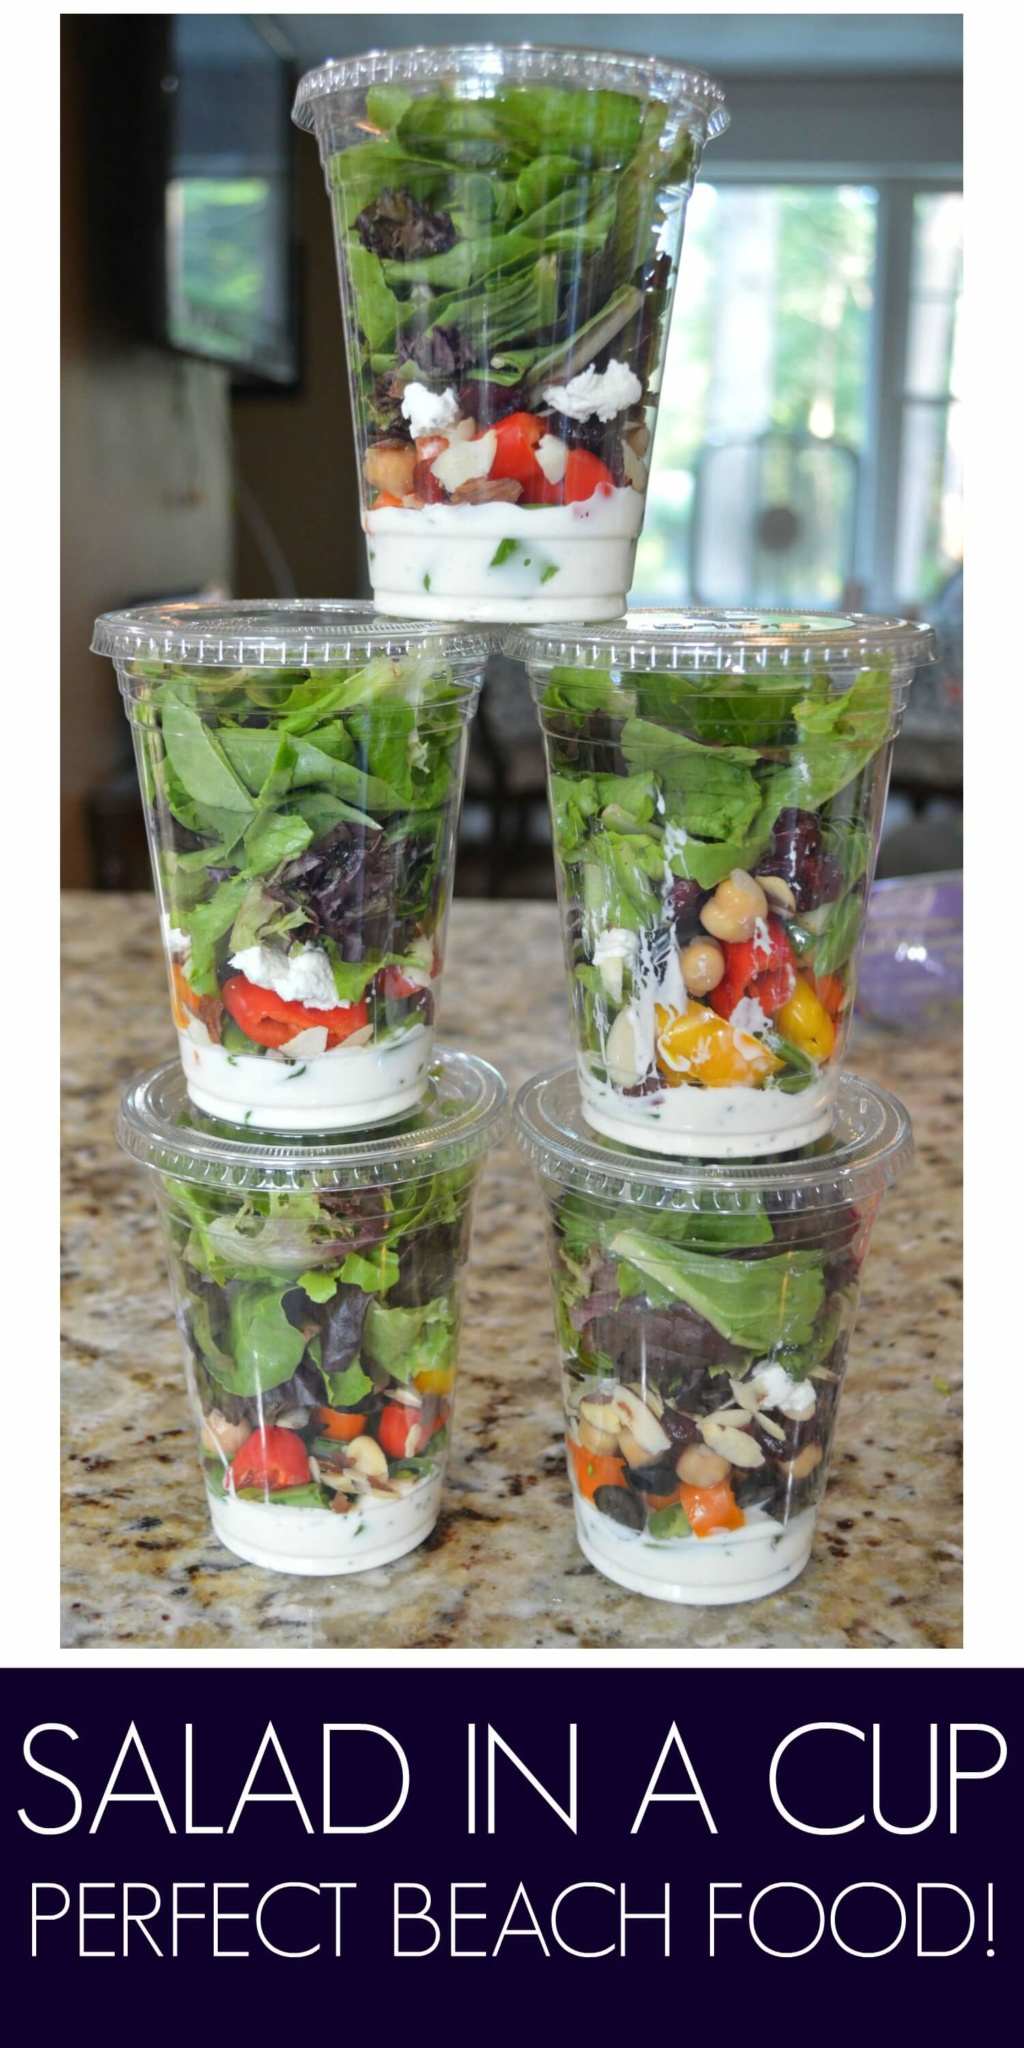 Salad in a Cup - Perfect Beach Food!